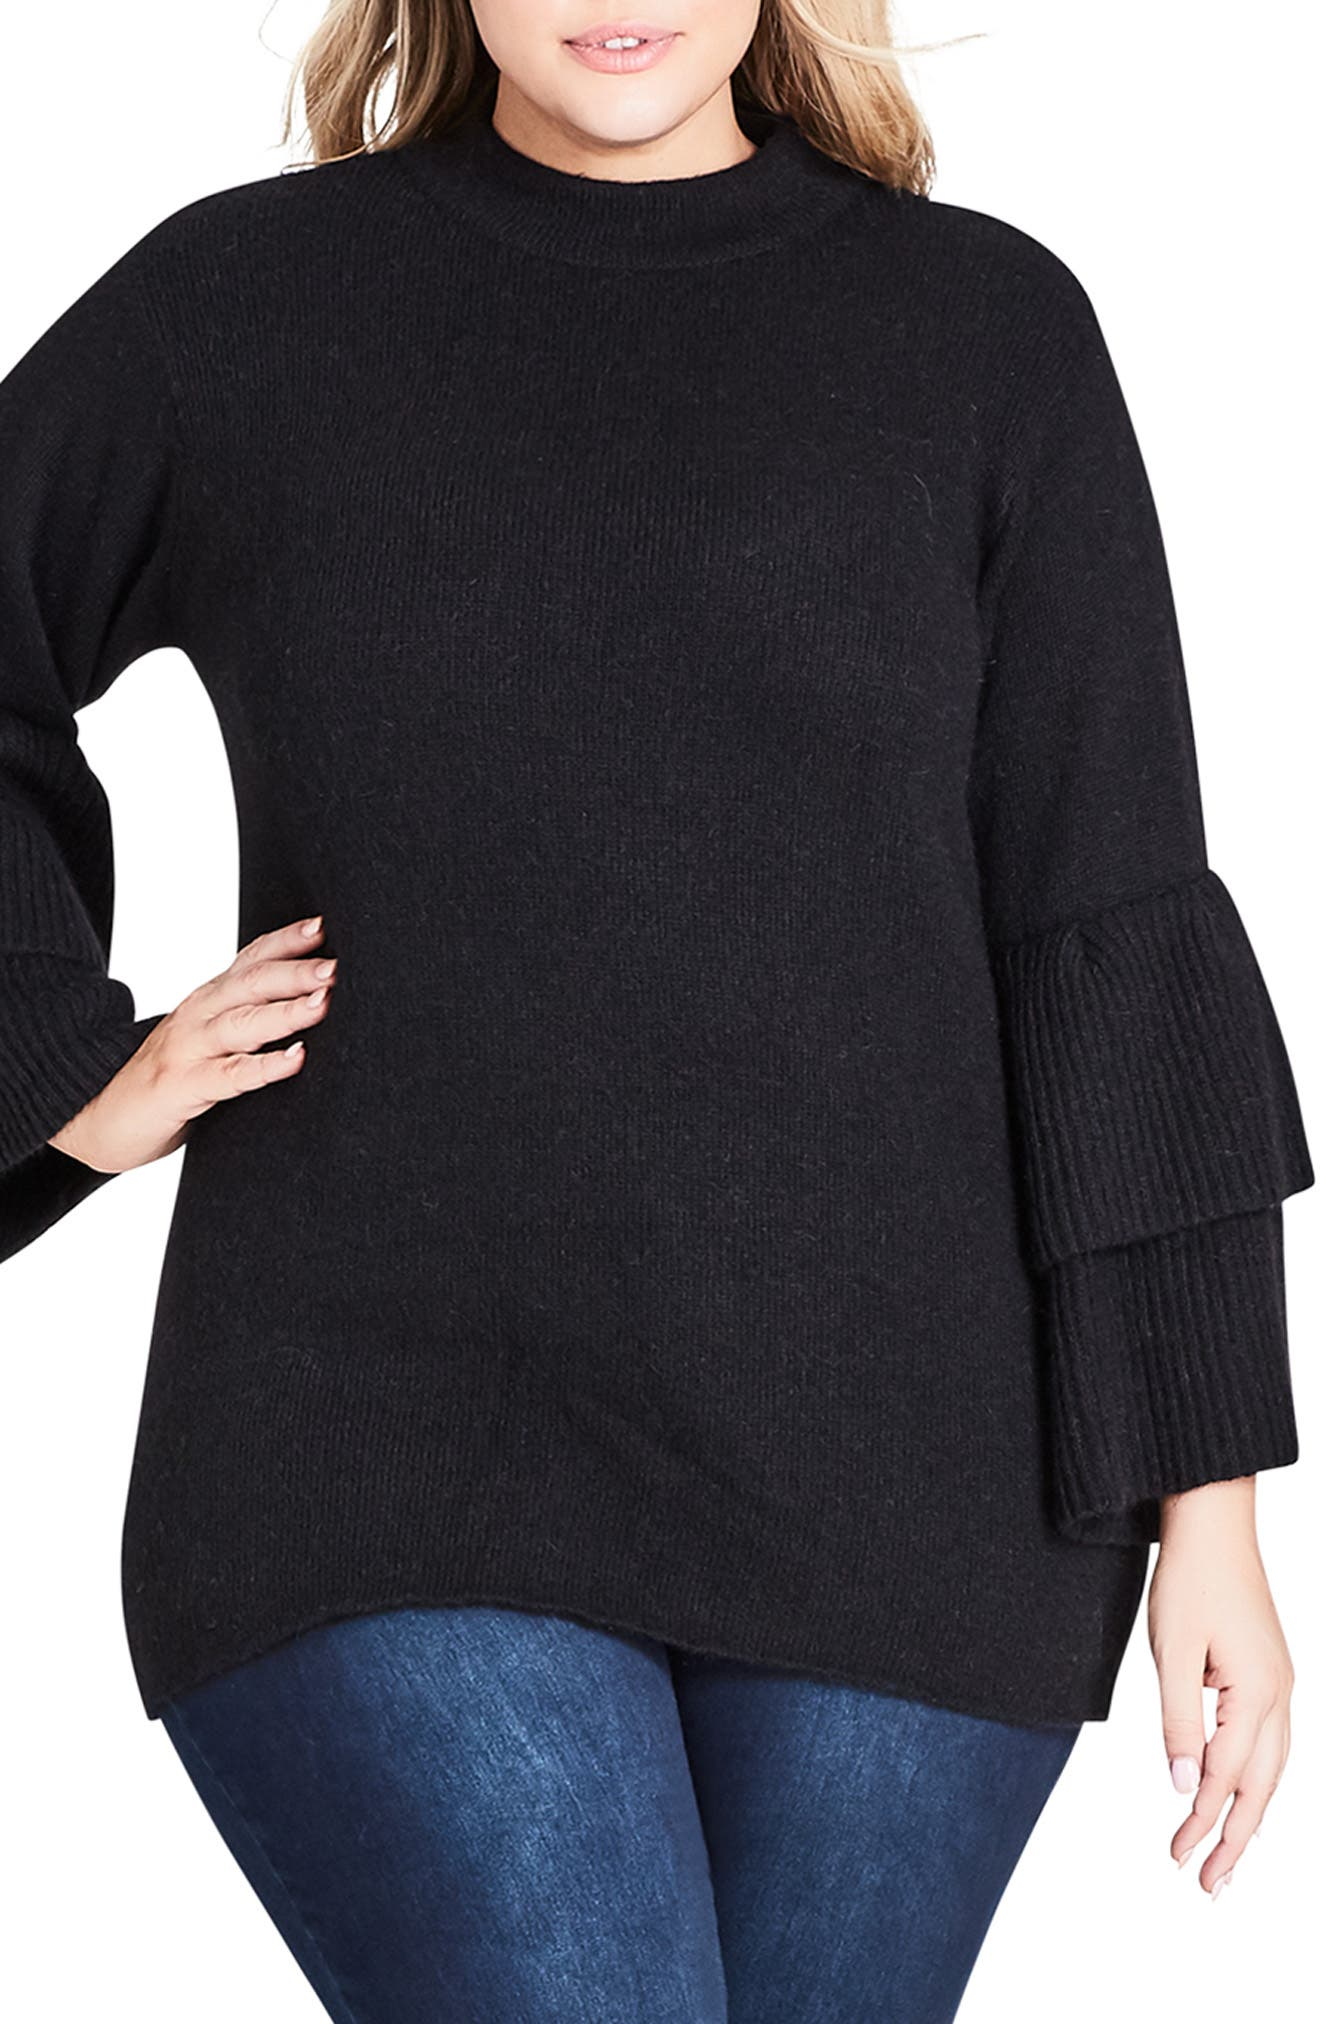 CITY CHIC Tiered Sleeve Sweater, Main, color, BLACK